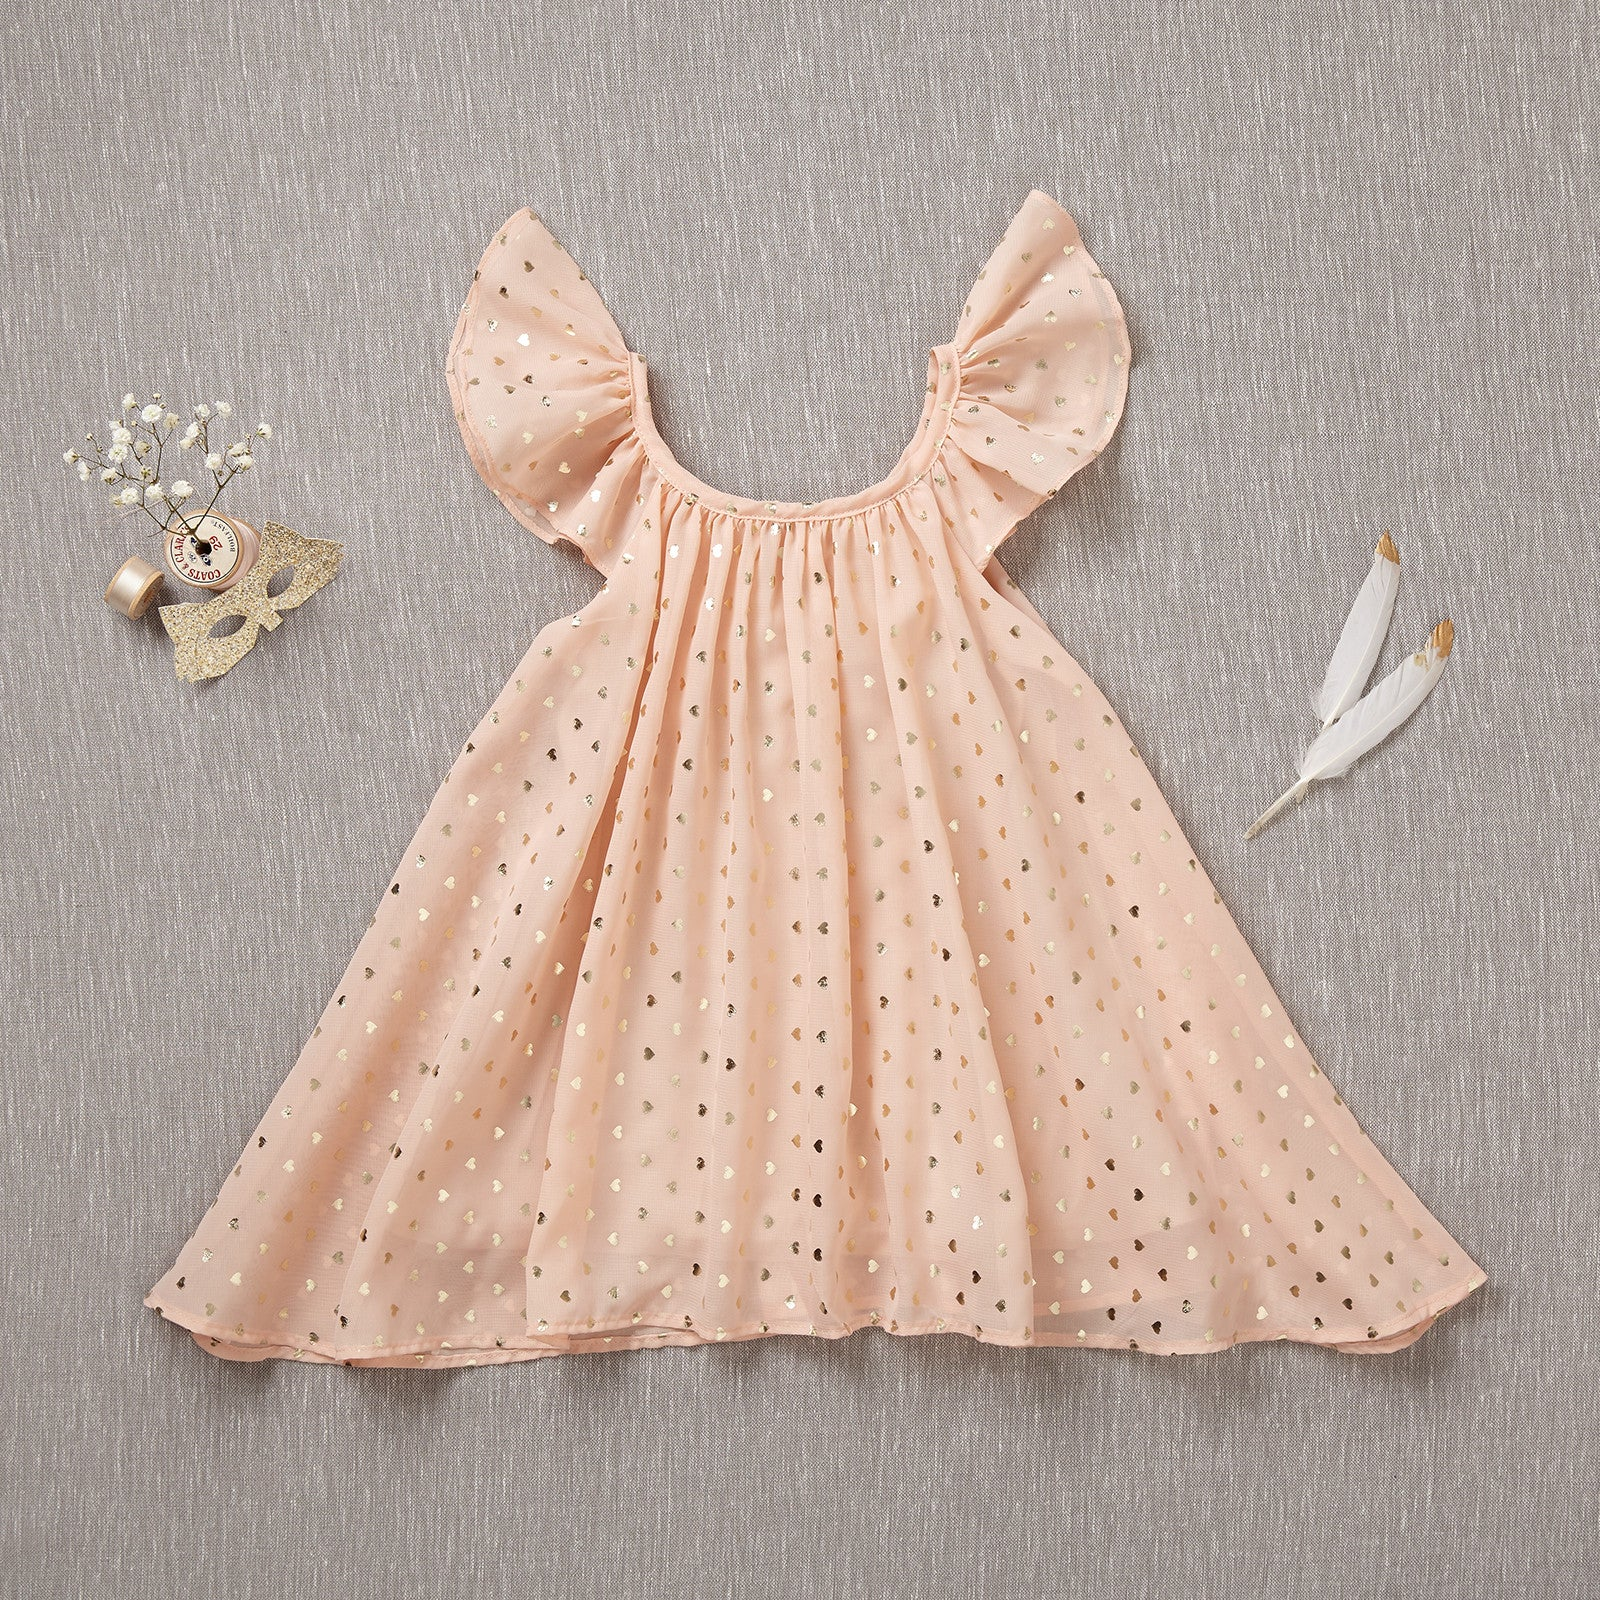 Pretty Please! - Rare Edition Gold Hearts/Blush Chiffon